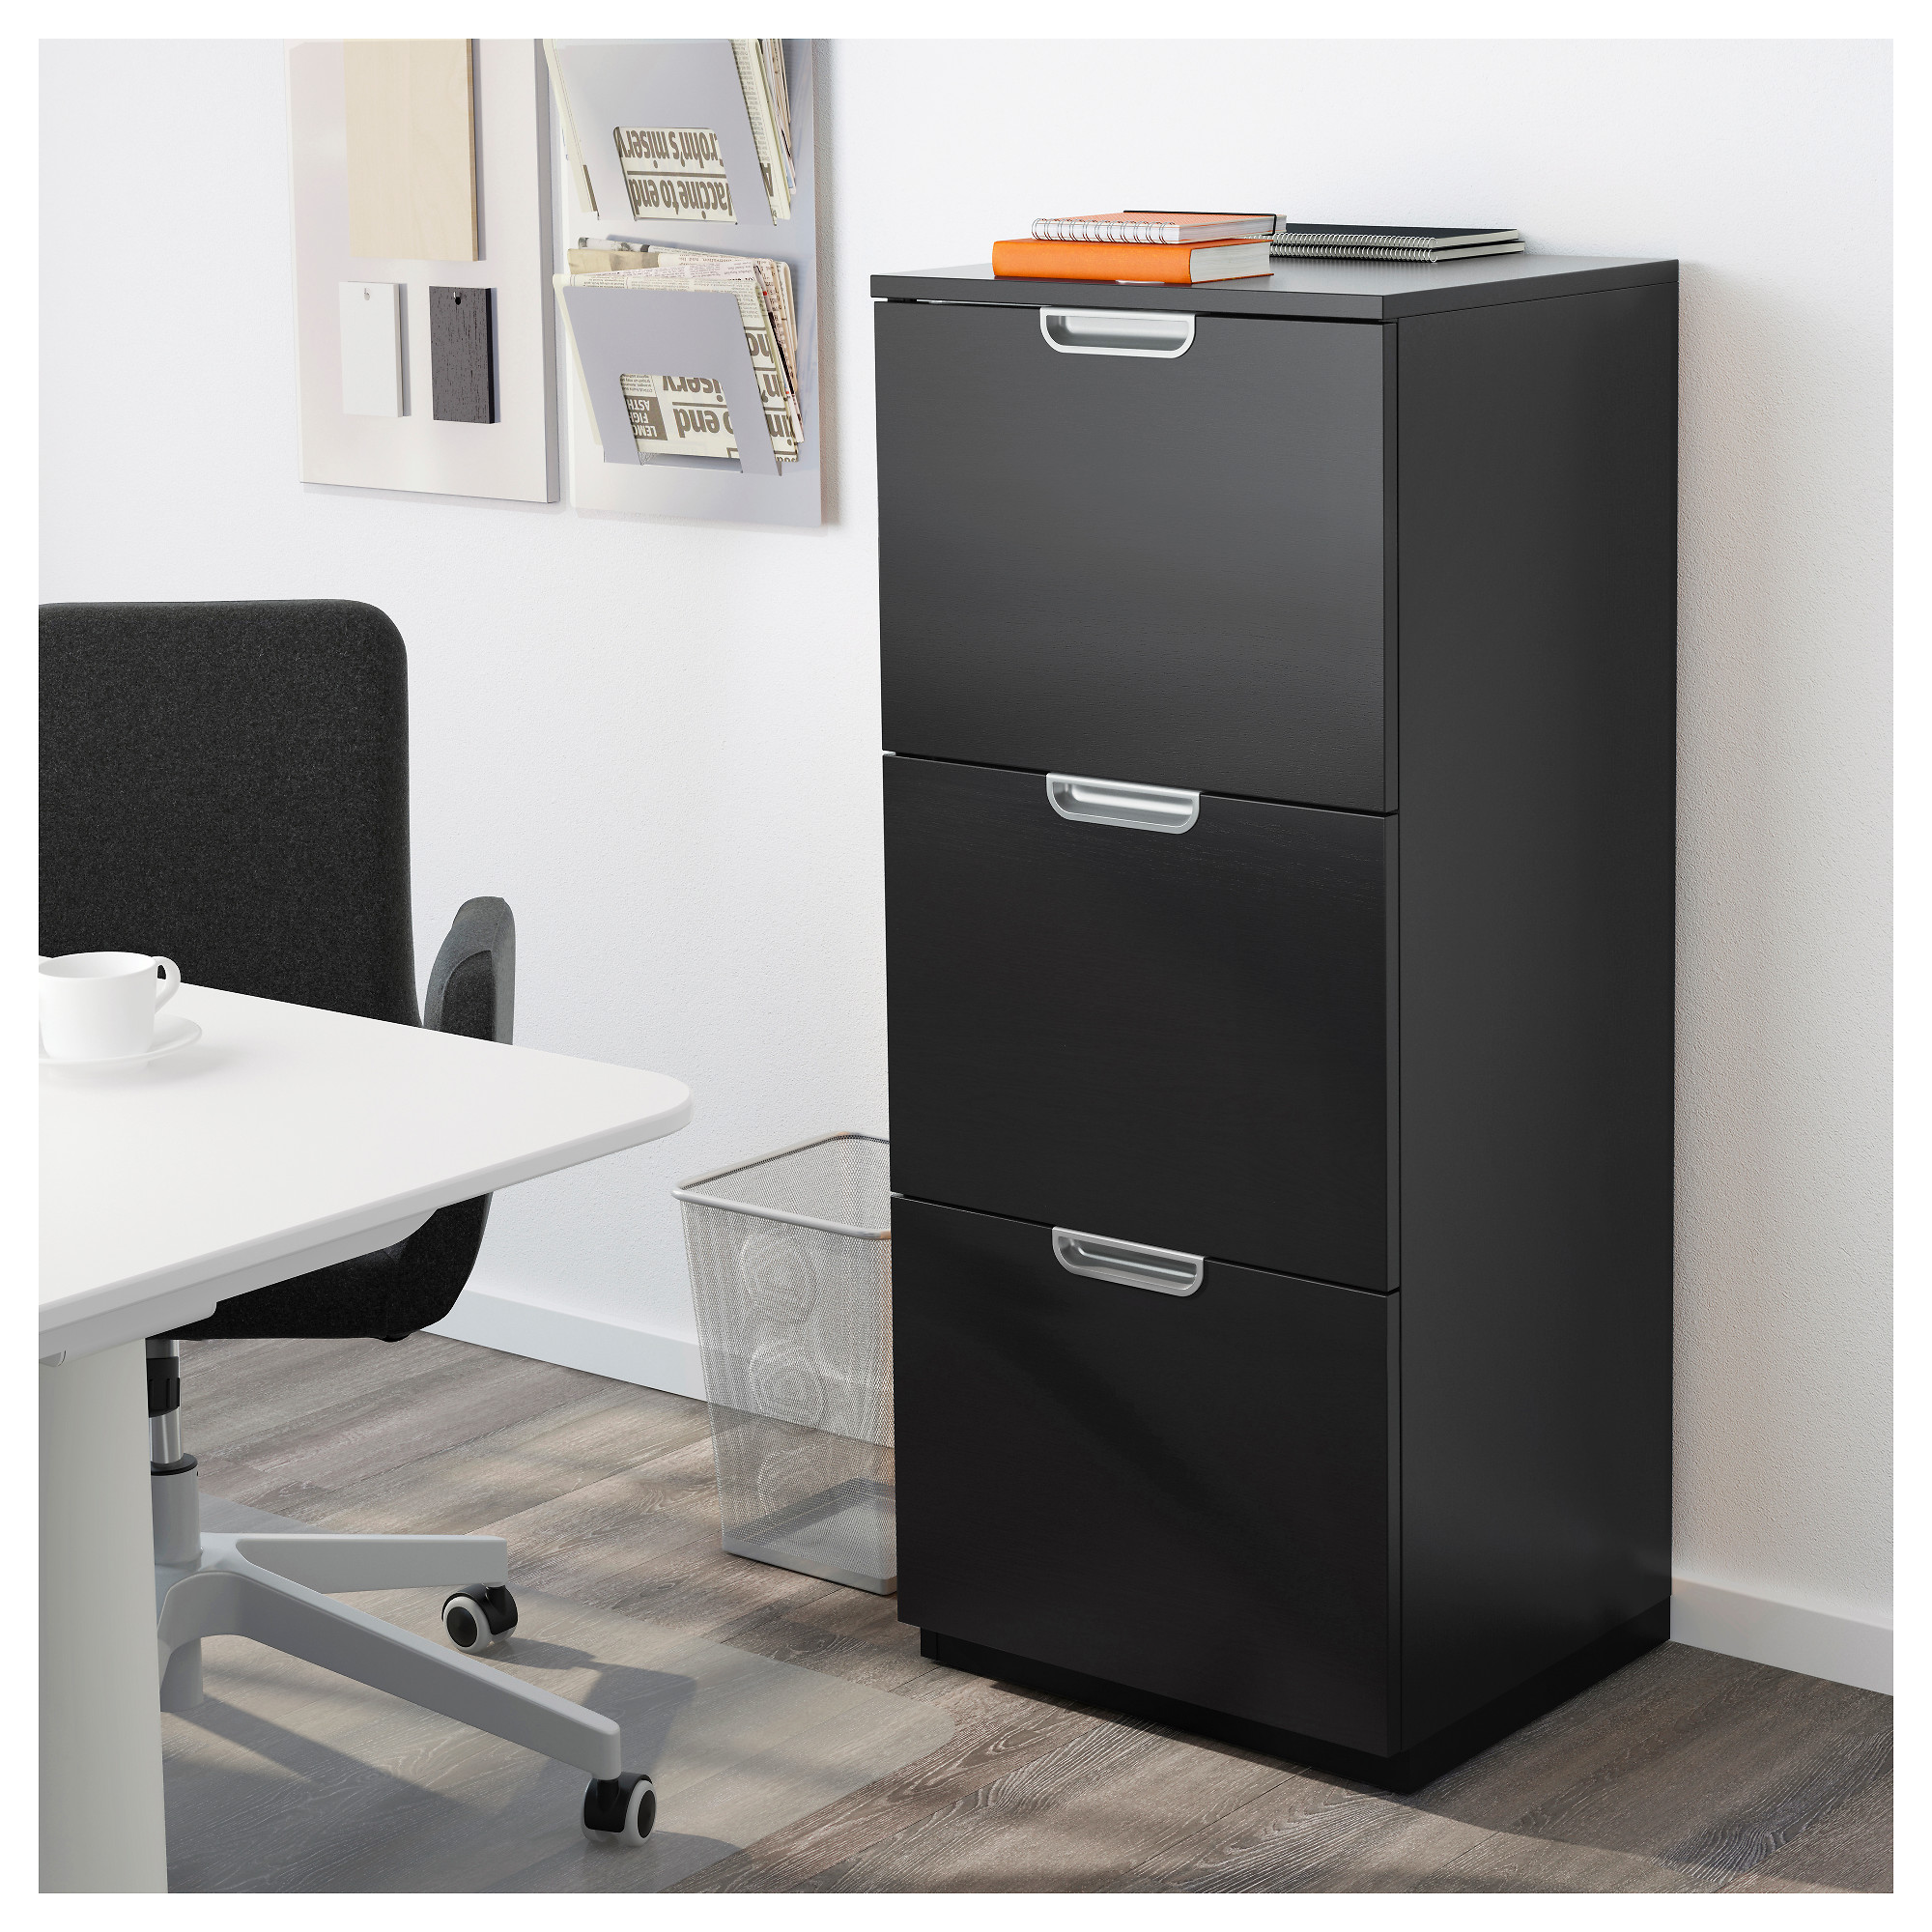 GALANT File cabinet - black-brown - IKEA